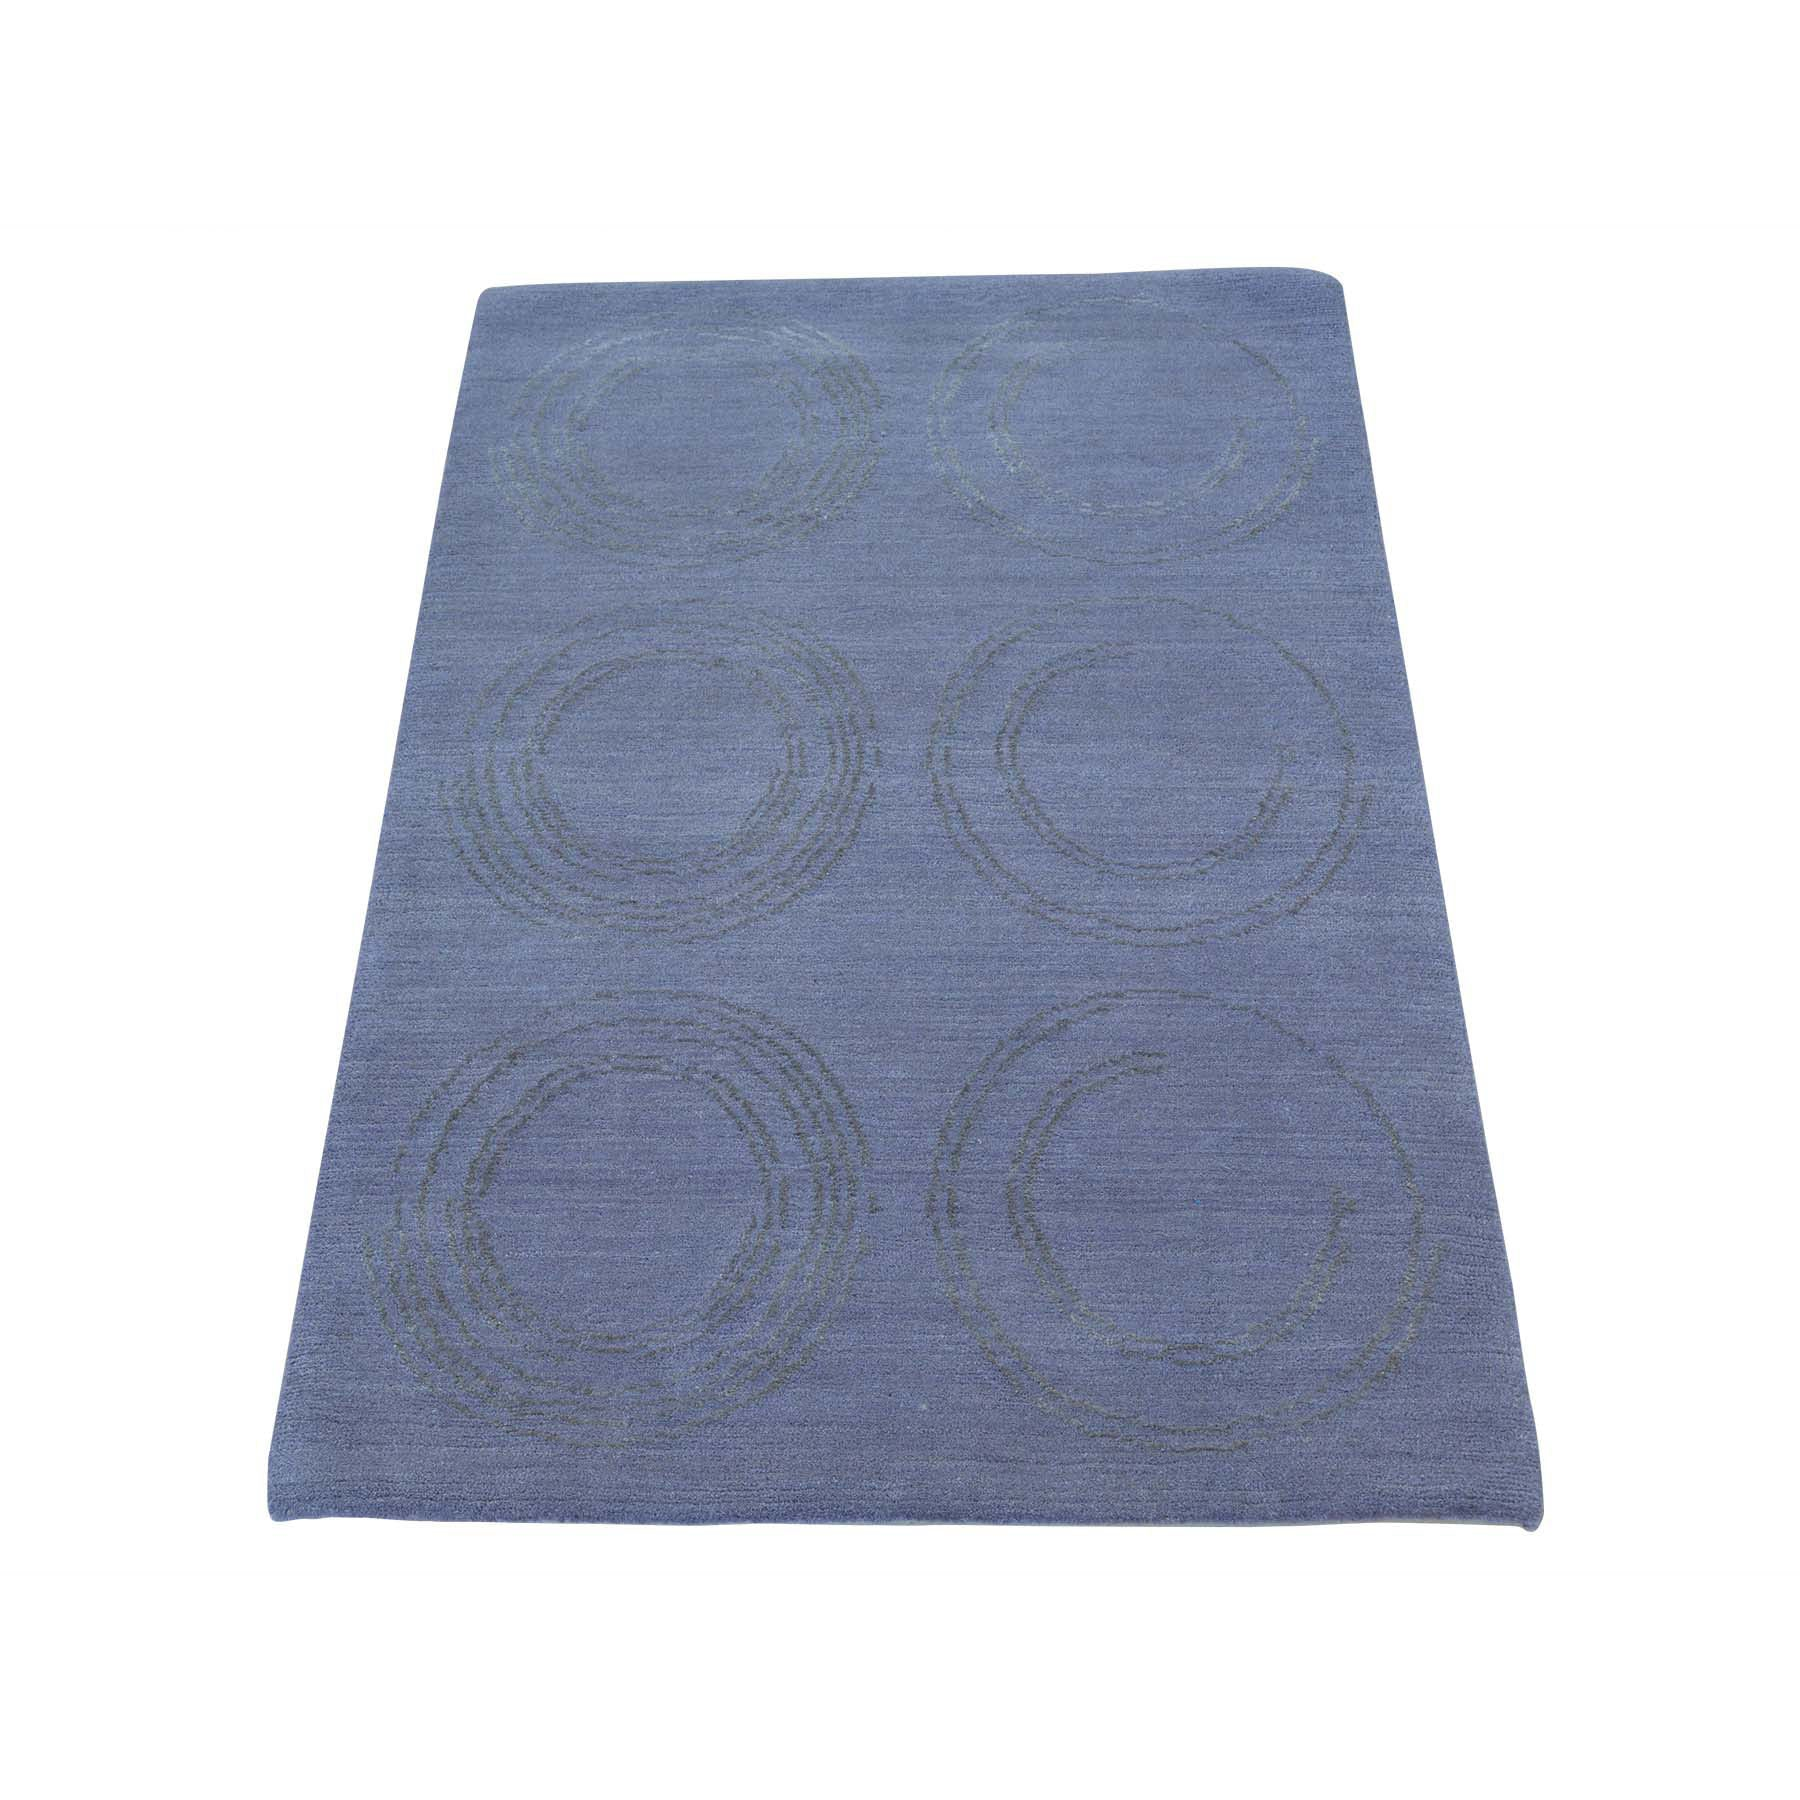 "Handmade Modern and Contemporary Rectangle Rug > Design# SH24030 > Size: 2'-0"" x 3'-0"" [ONLINE ONLY]"